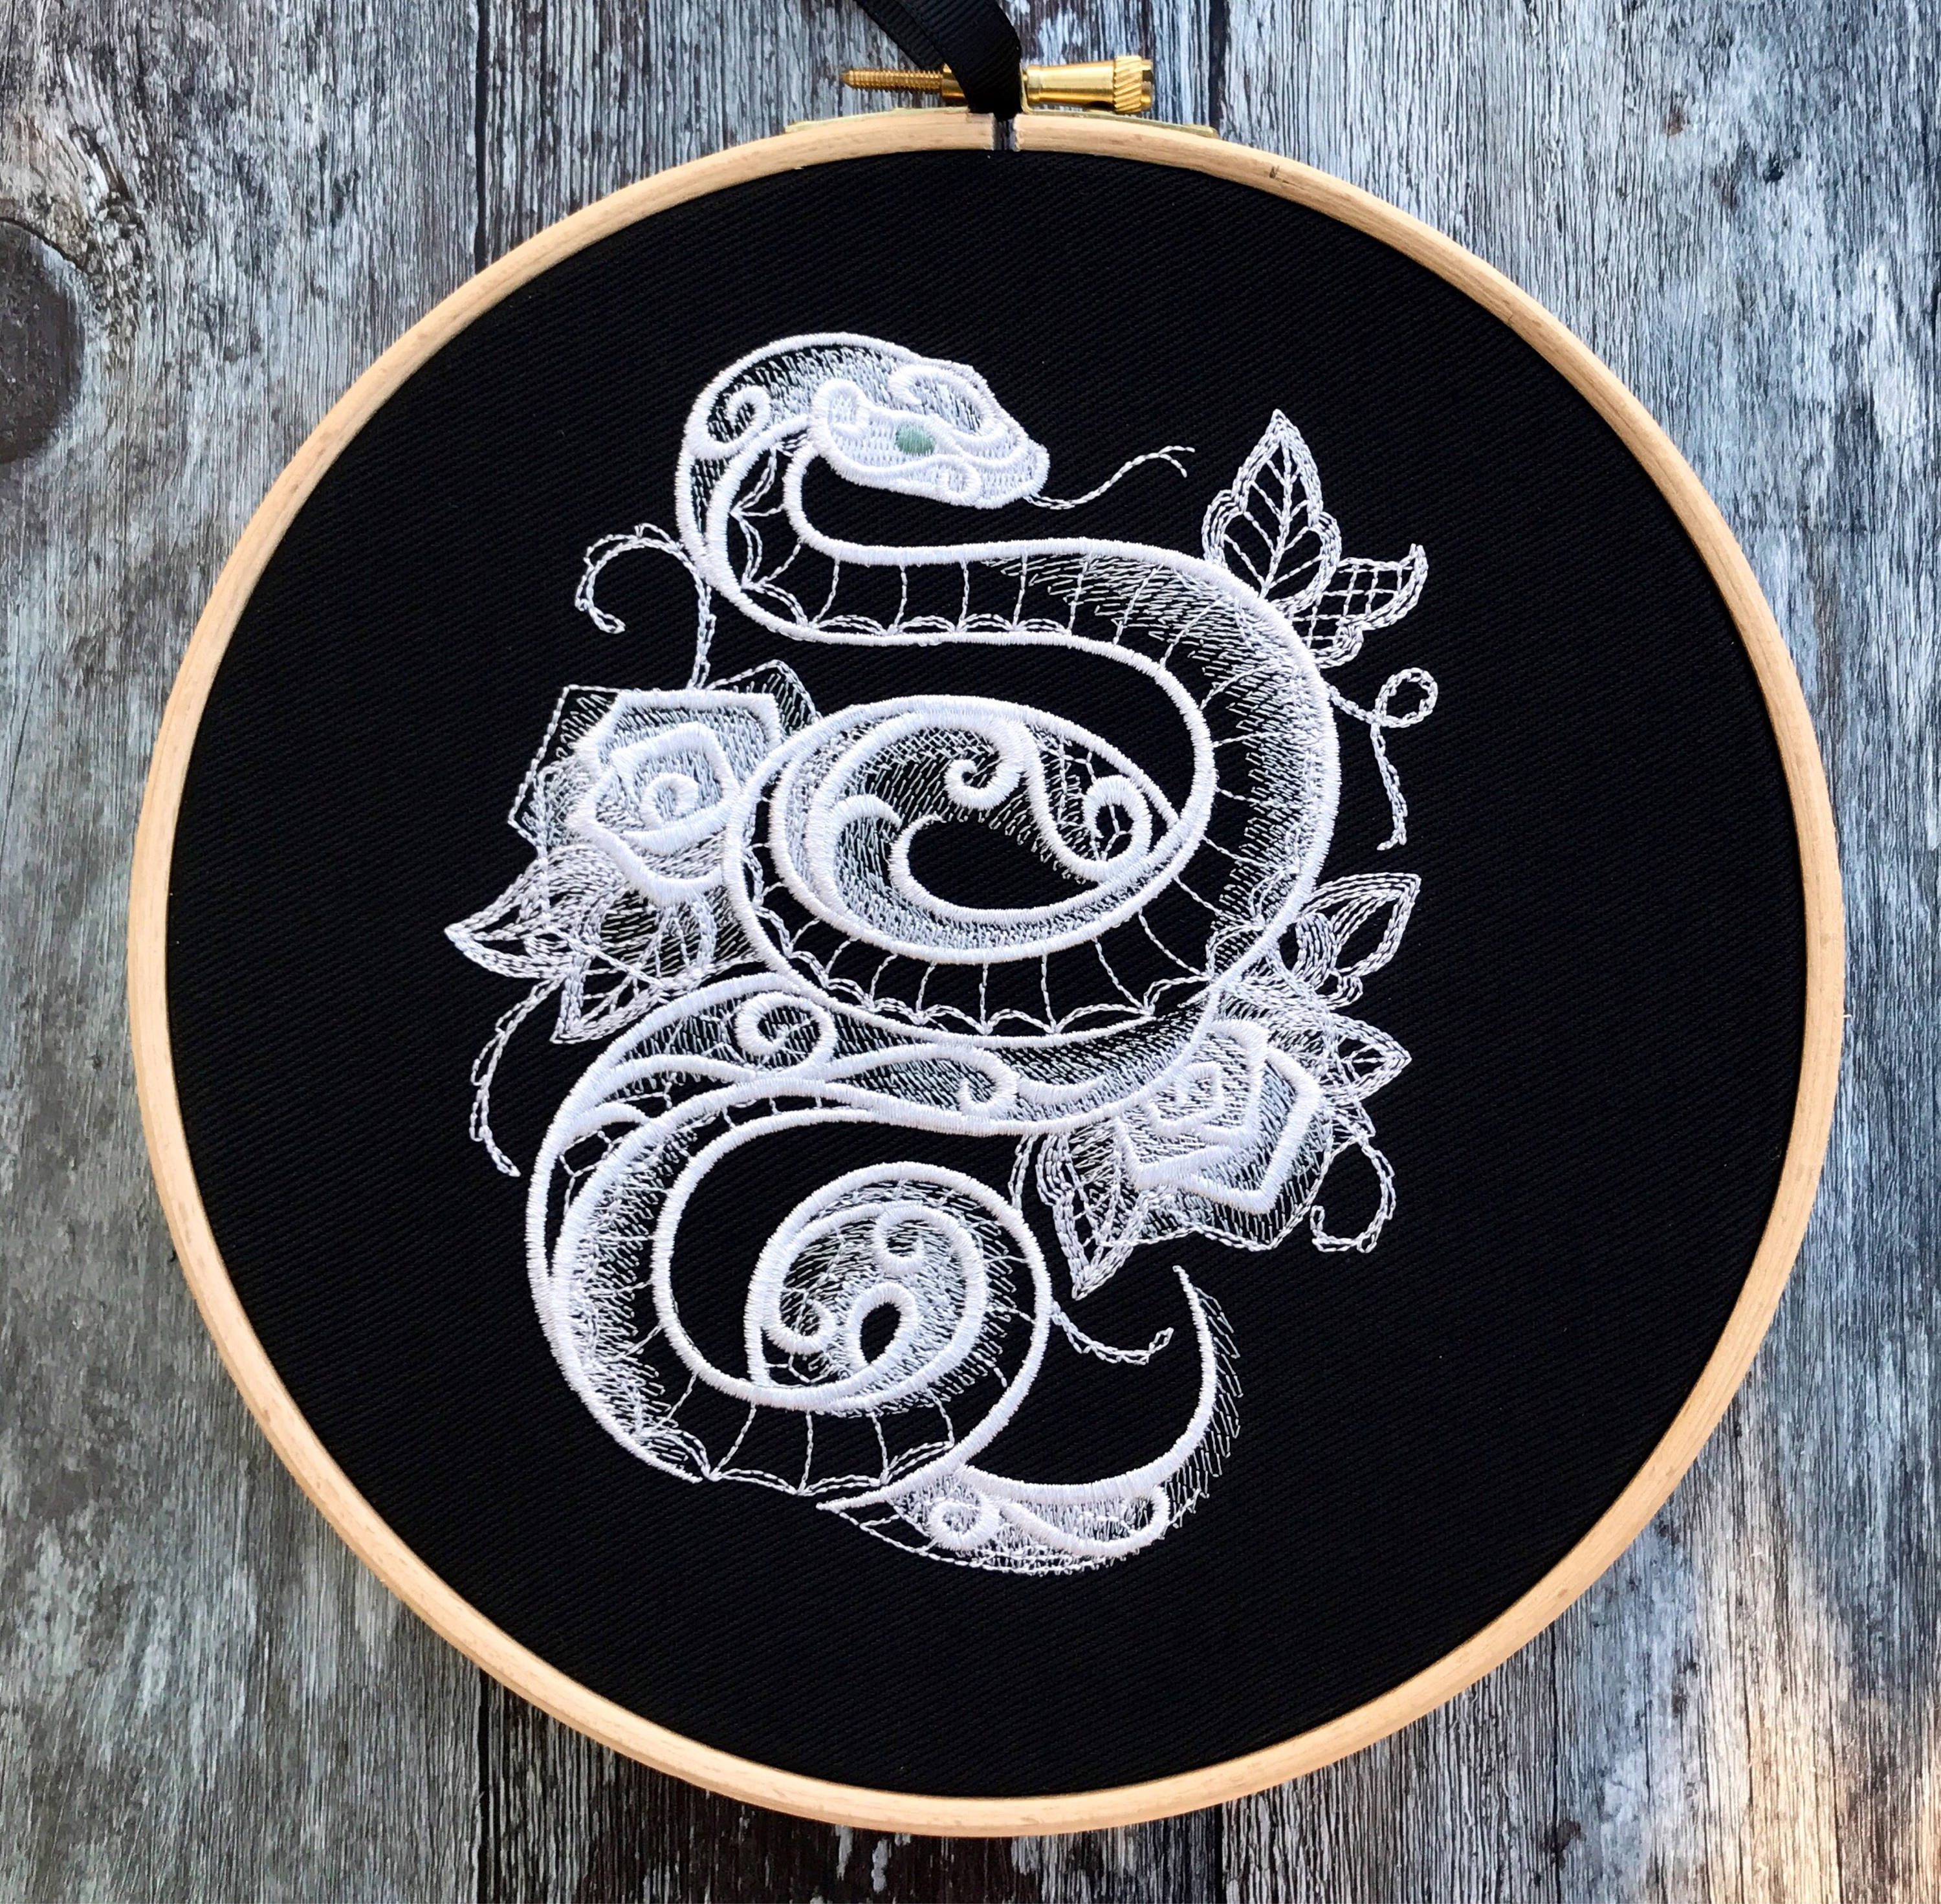 Snake with roses, lace effect, Embroidery hoop art